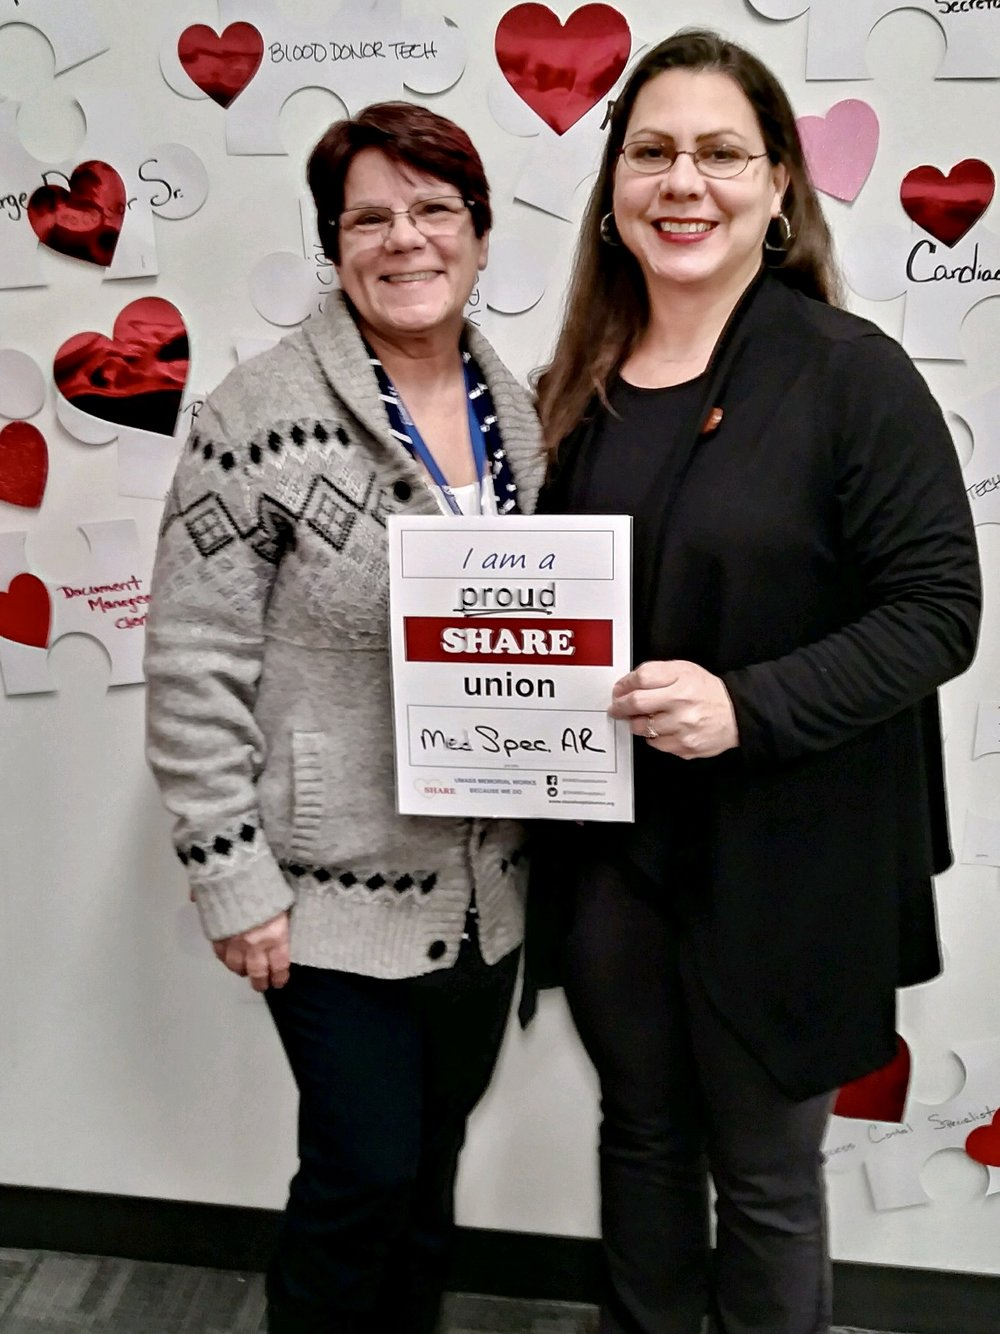 """SHARE members in the Billing departments at 306 Belmont are getting our hospital paid. And they're showing that they're """"SHARE-Proud"""" in support of solid raises."""